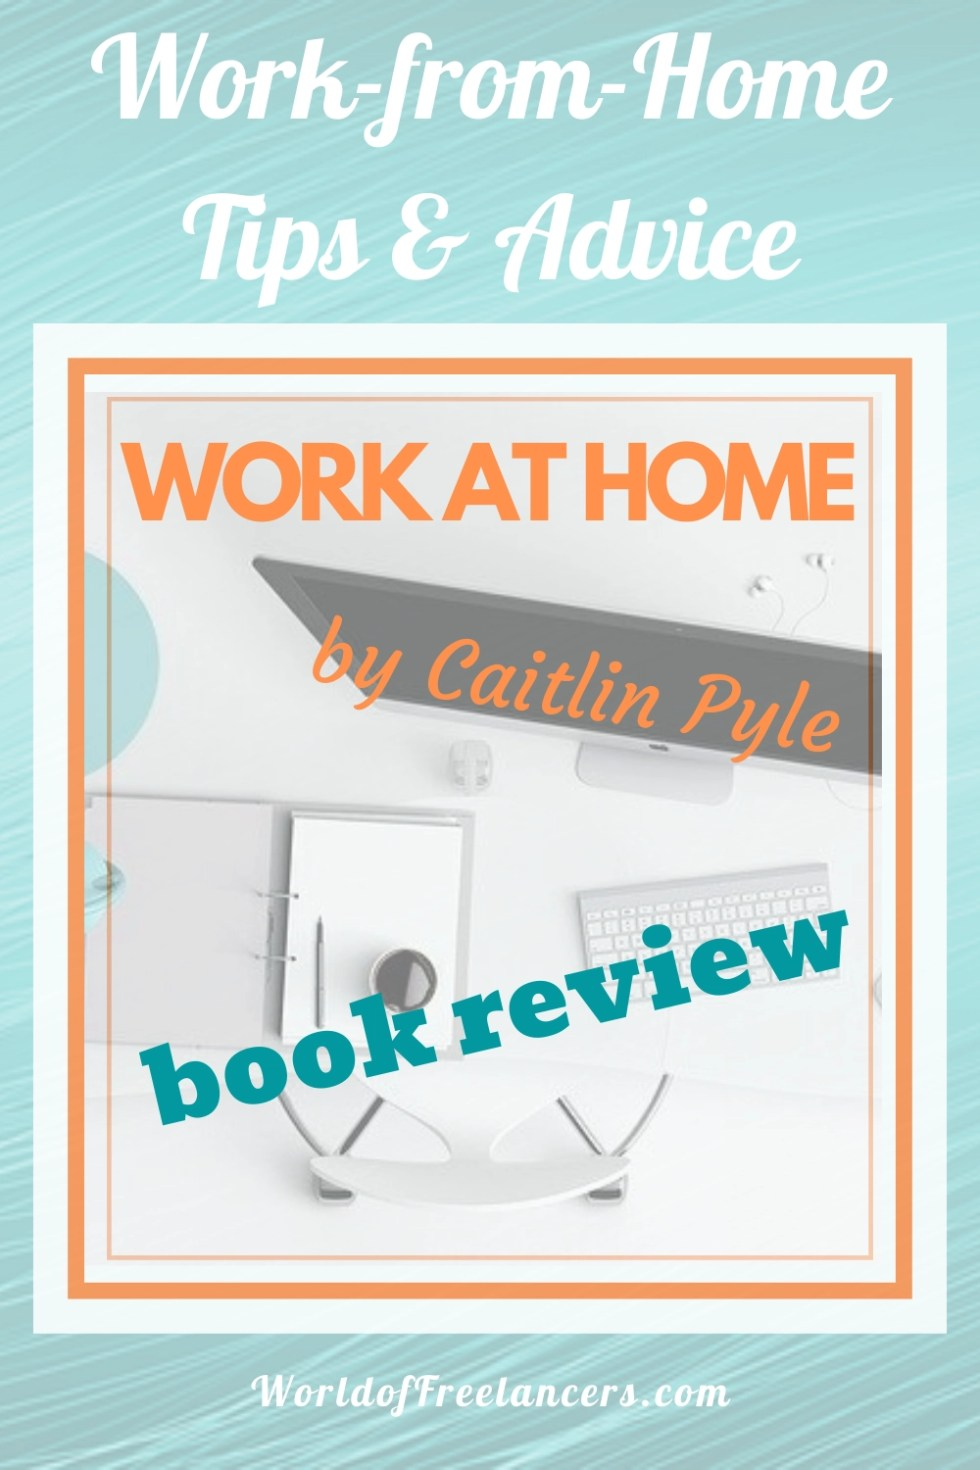 Work-from-home tips and advice in the book Work at Home by Caitlin Pyle which you can read about in this book review